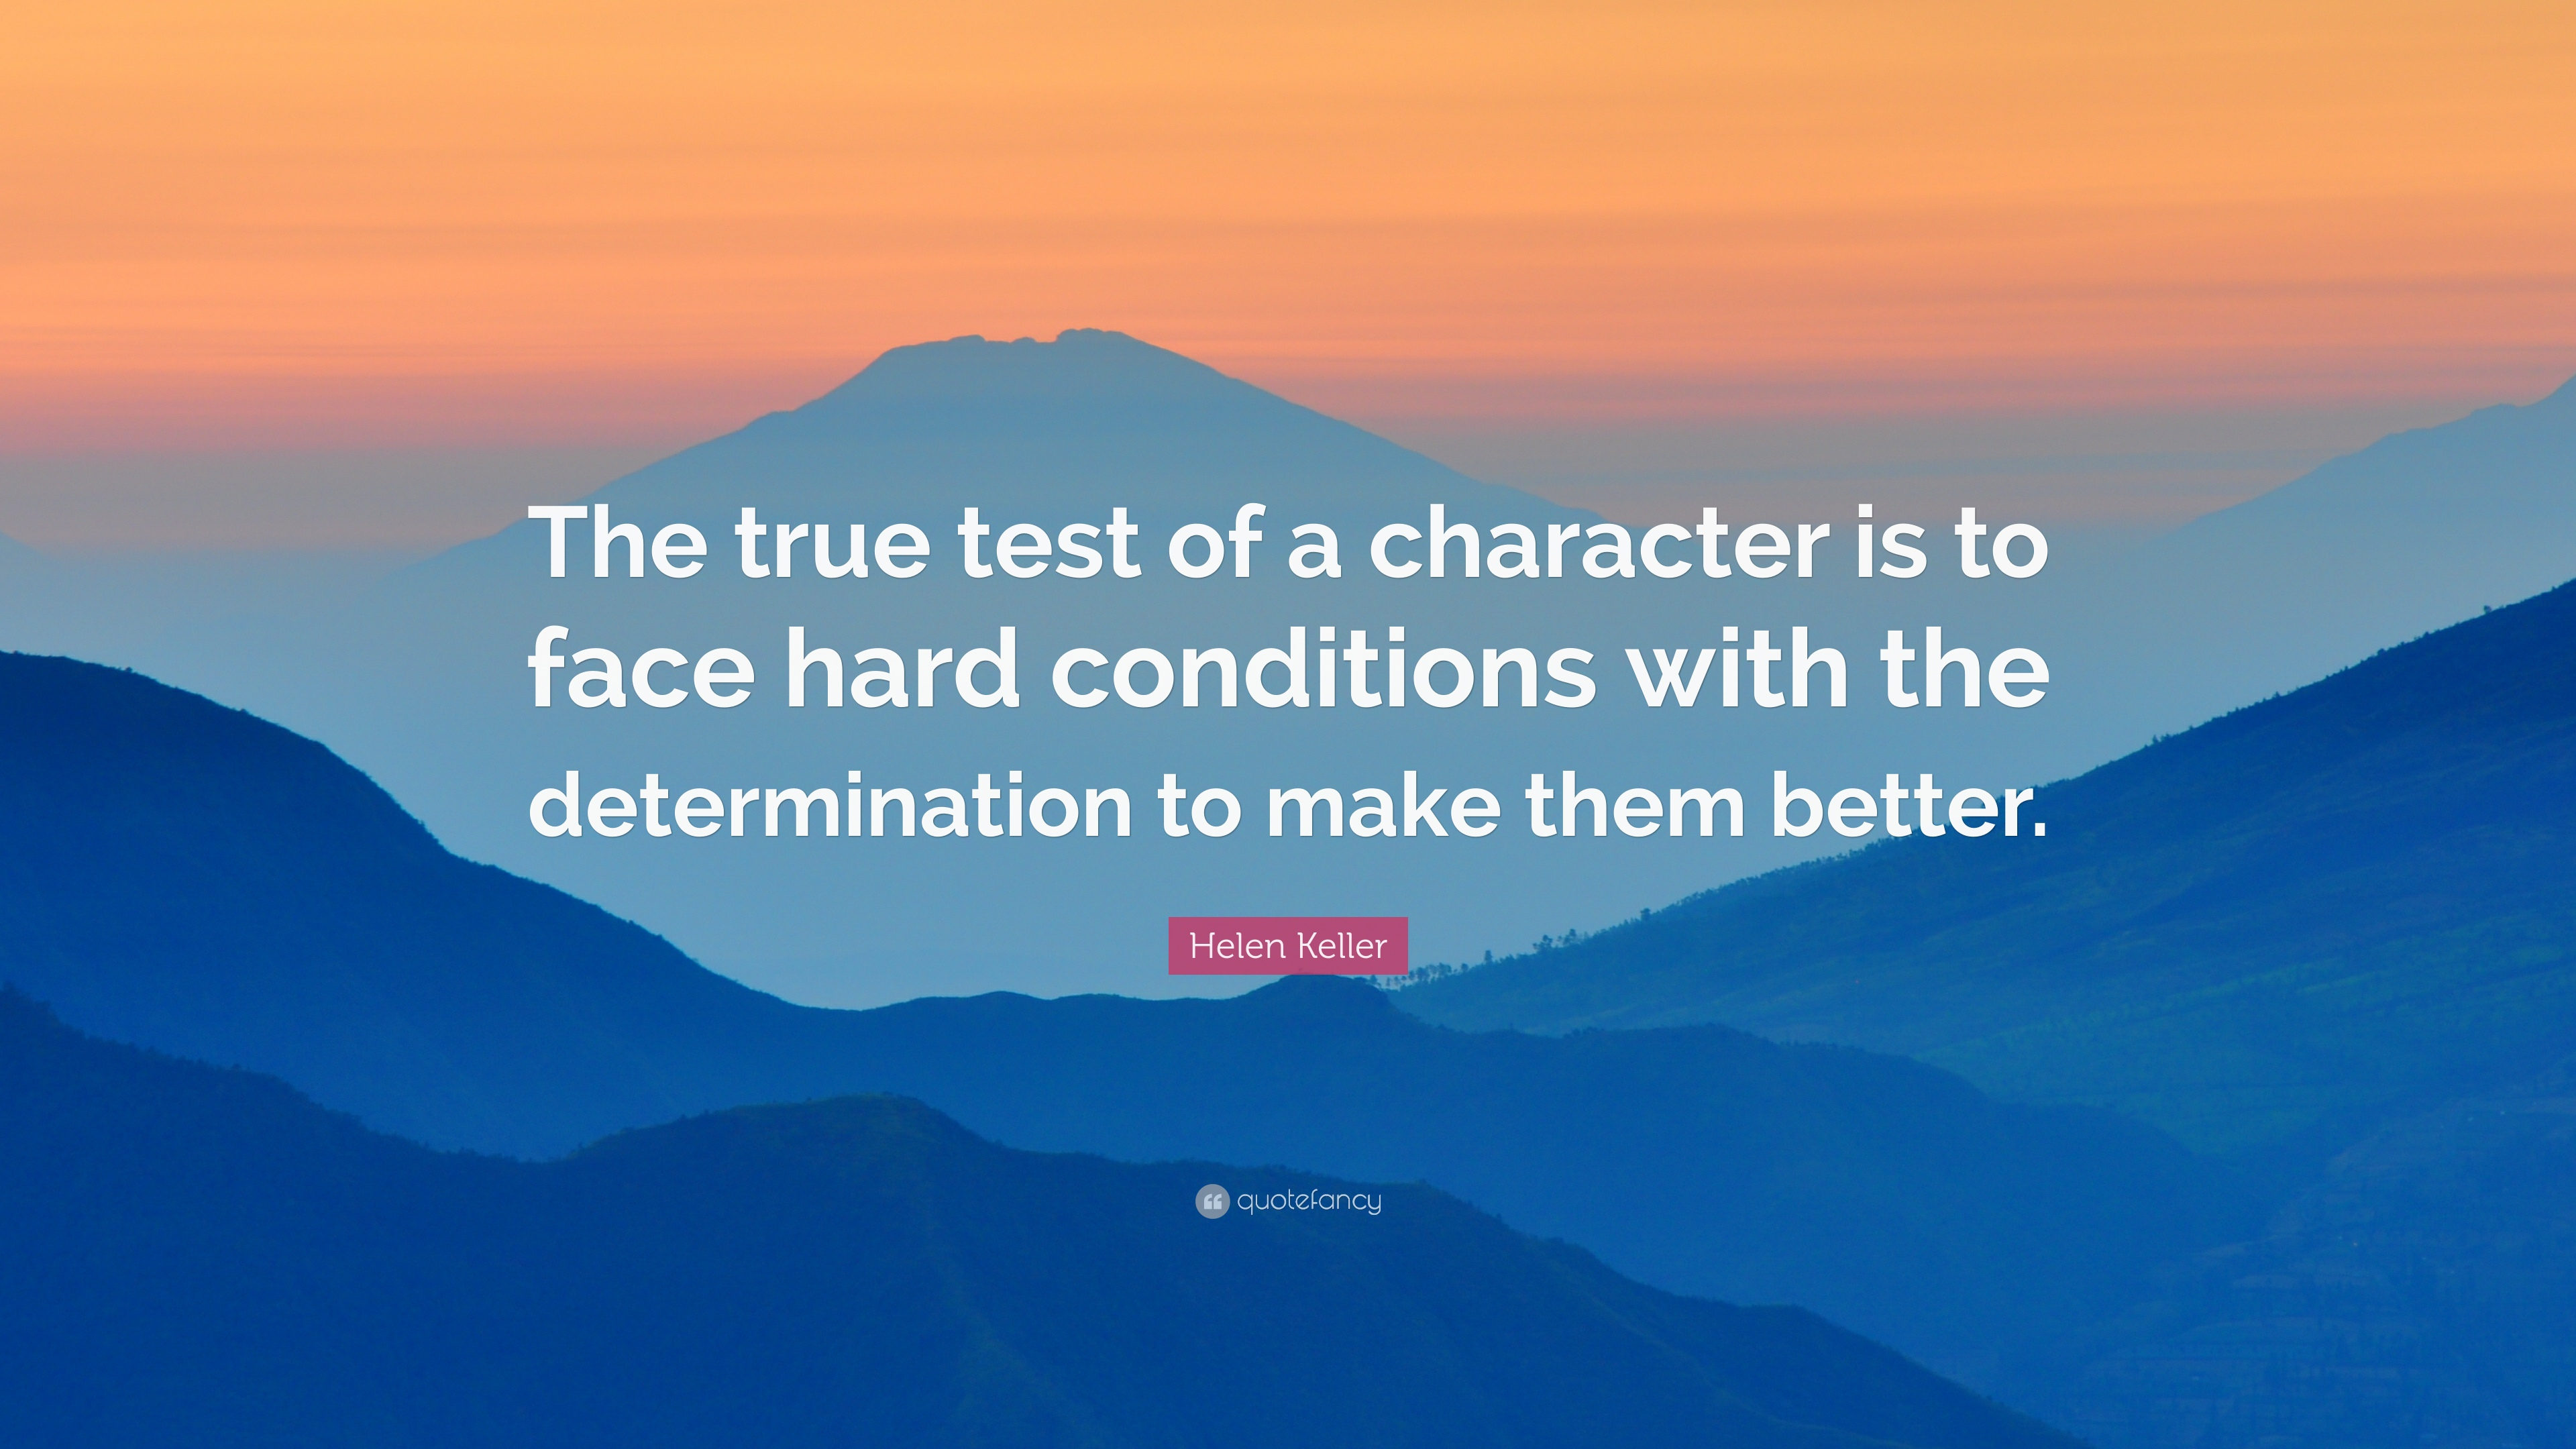 Helen keller quote the true test of a character is to face hard helen keller quote the true test of a character is to face hard conditions altavistaventures Images